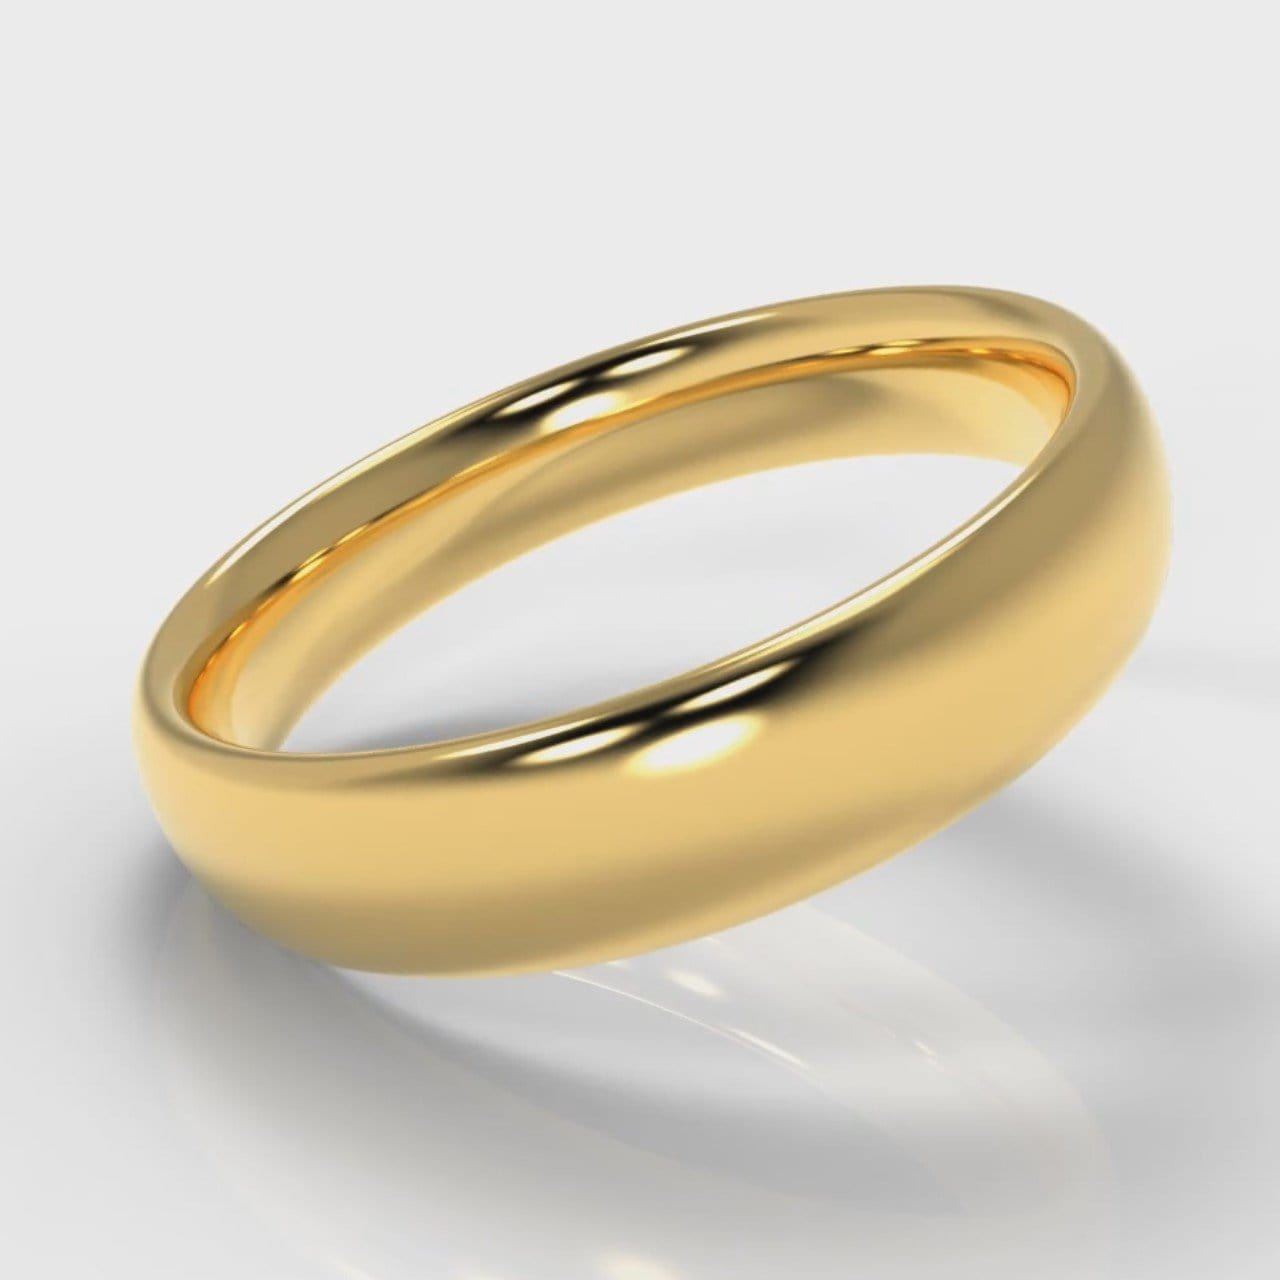 5mm Court Shaped Comfort Fit Wedding Ring - Yellow Gold